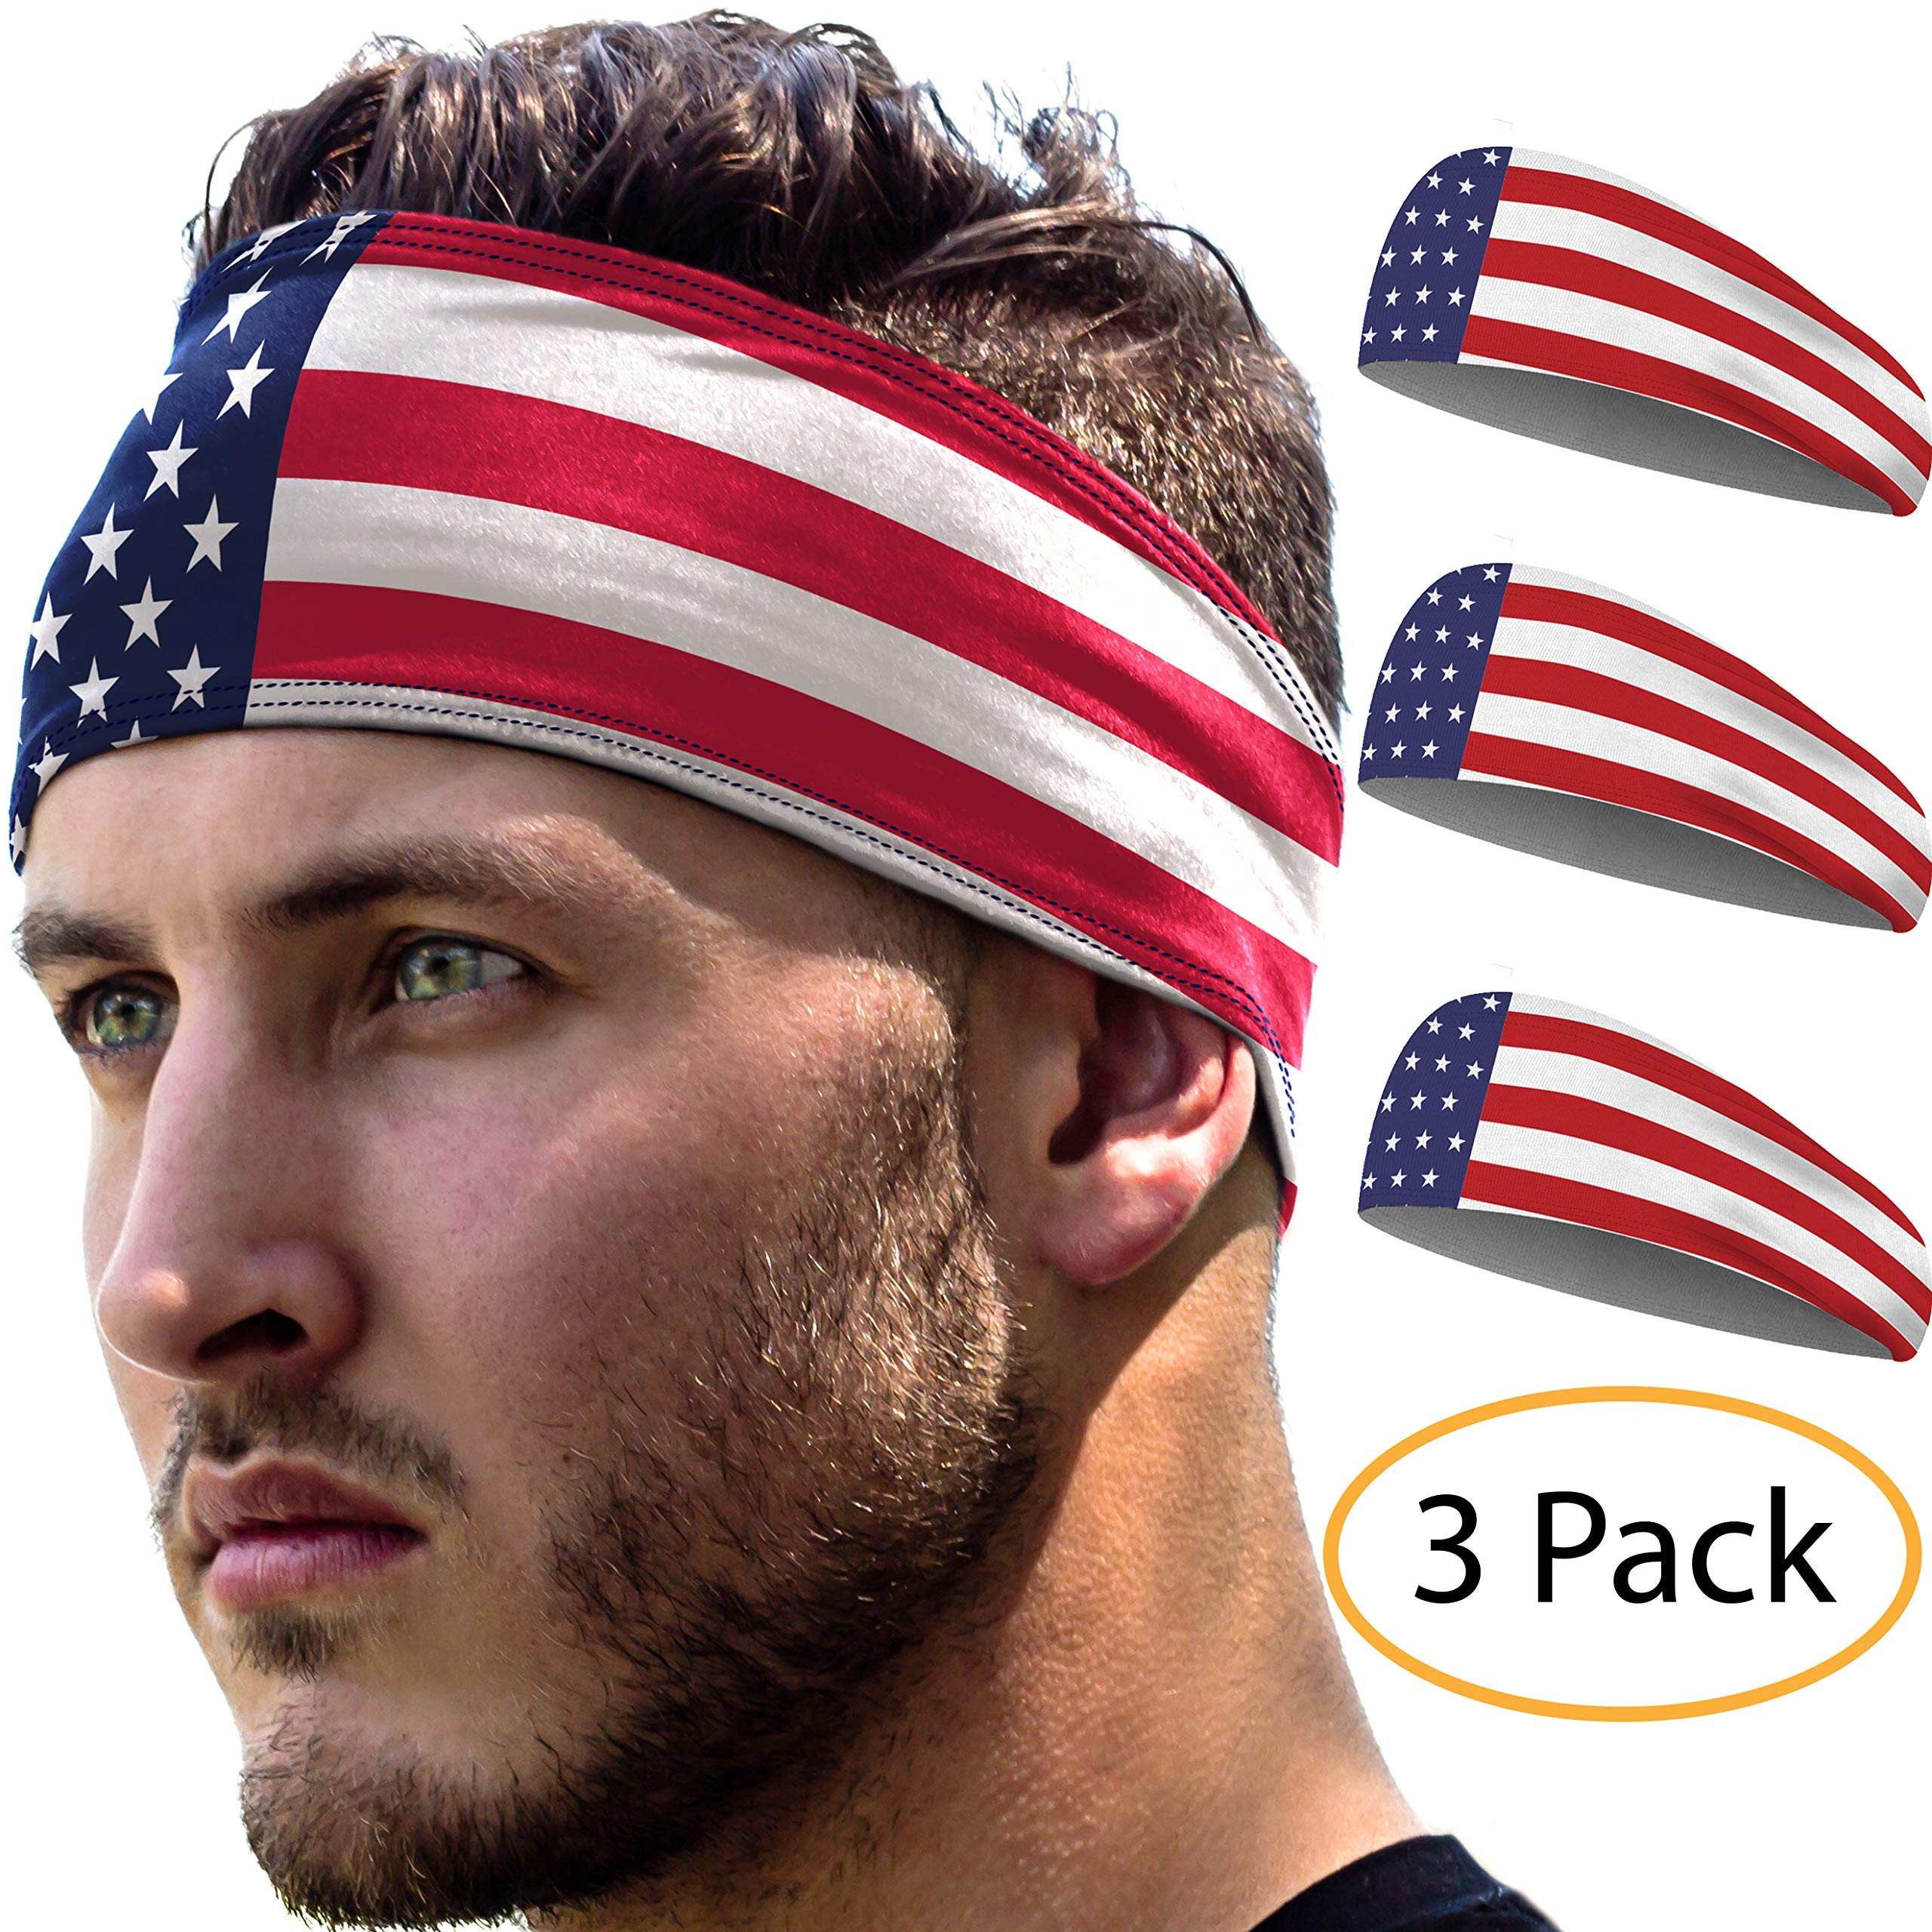 Sports Headbands 3 Pack: Unisex Fitness Headbands for Women & Men. Head Band Sweatband for Running, Yoga, Workout Gym Exercise. NO Slip Sport Sweatbands & Sweat Wicking Athletic Head Wrap Bands by E Tronic Edge